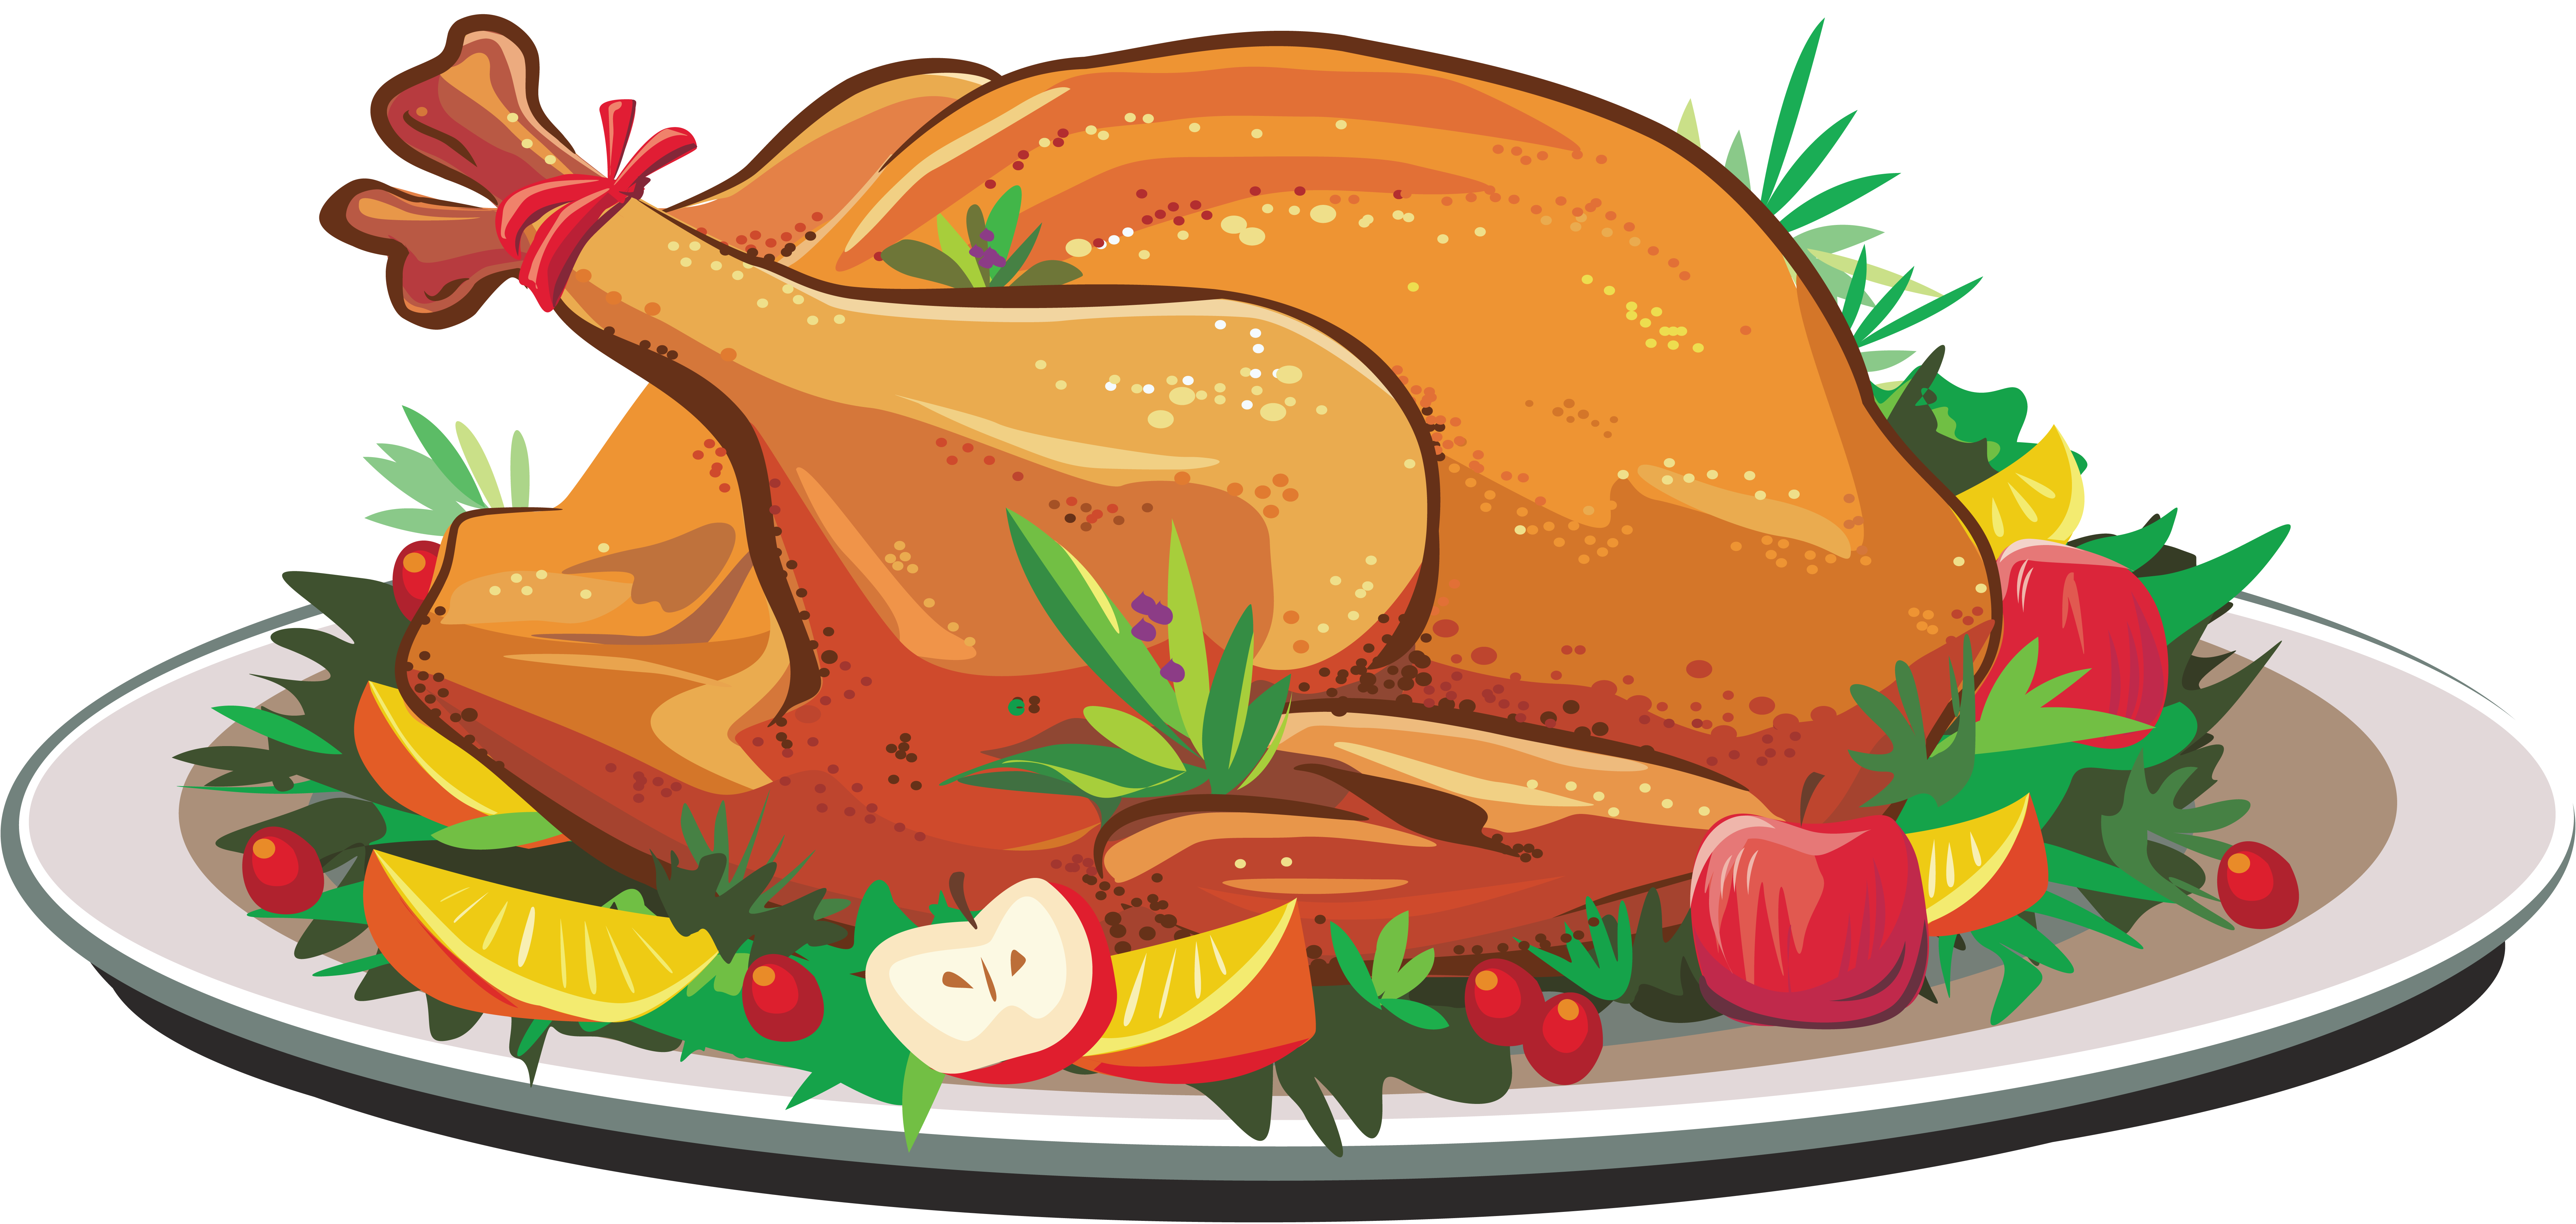 Drawing turkey cooked. Thanksgiving food clipart at